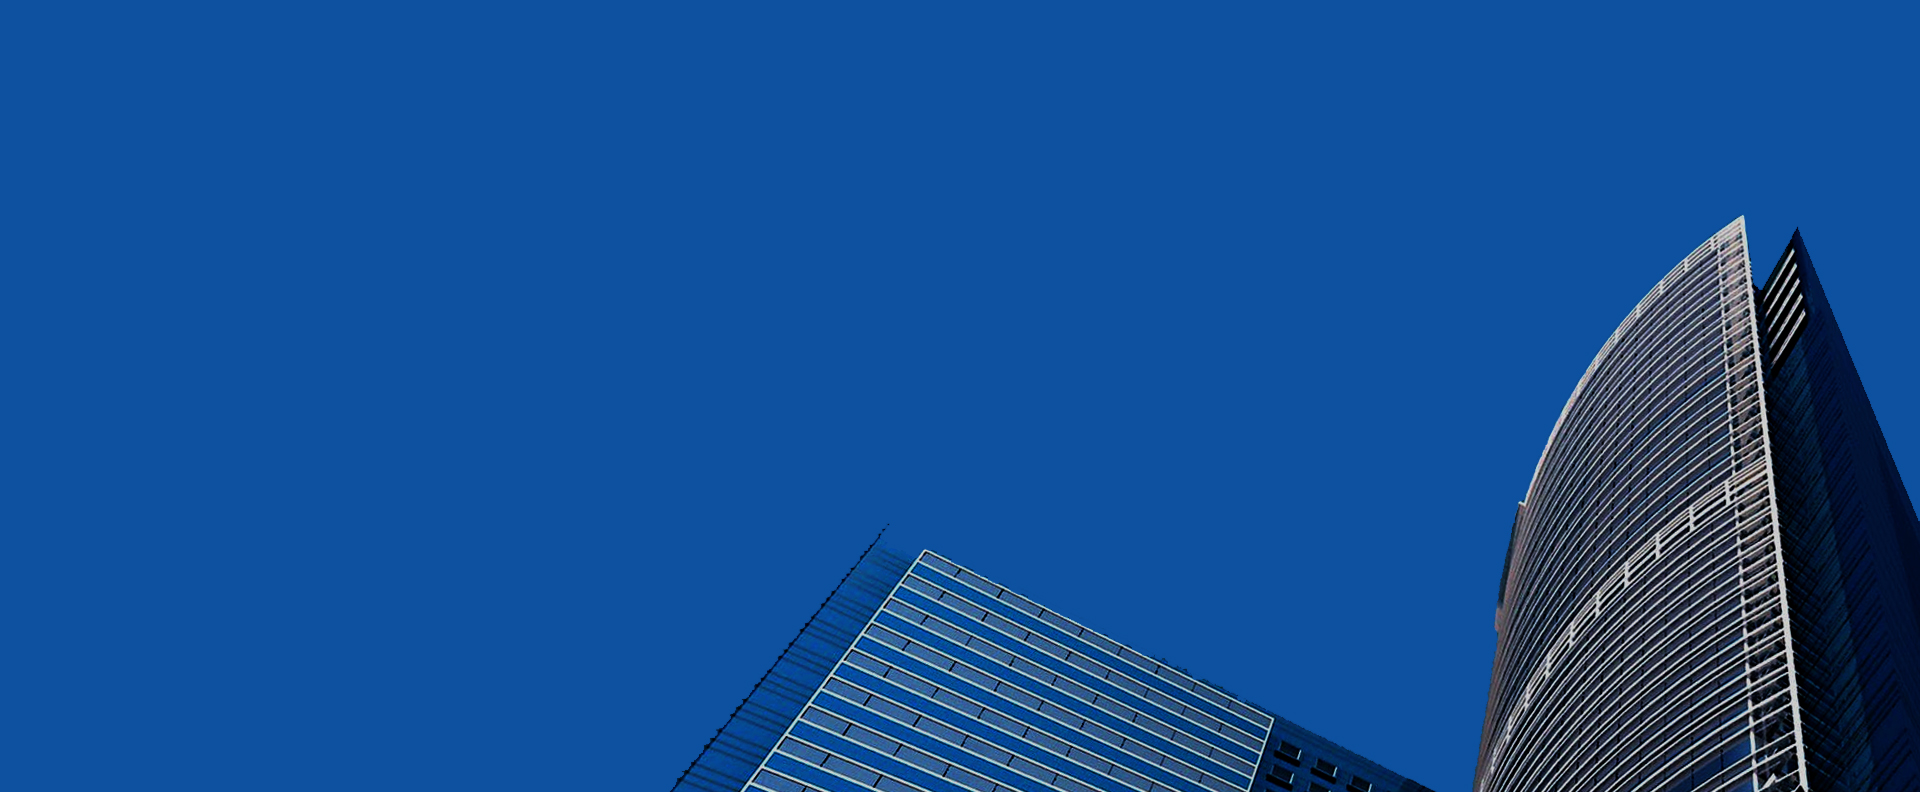 buildings with blue sky